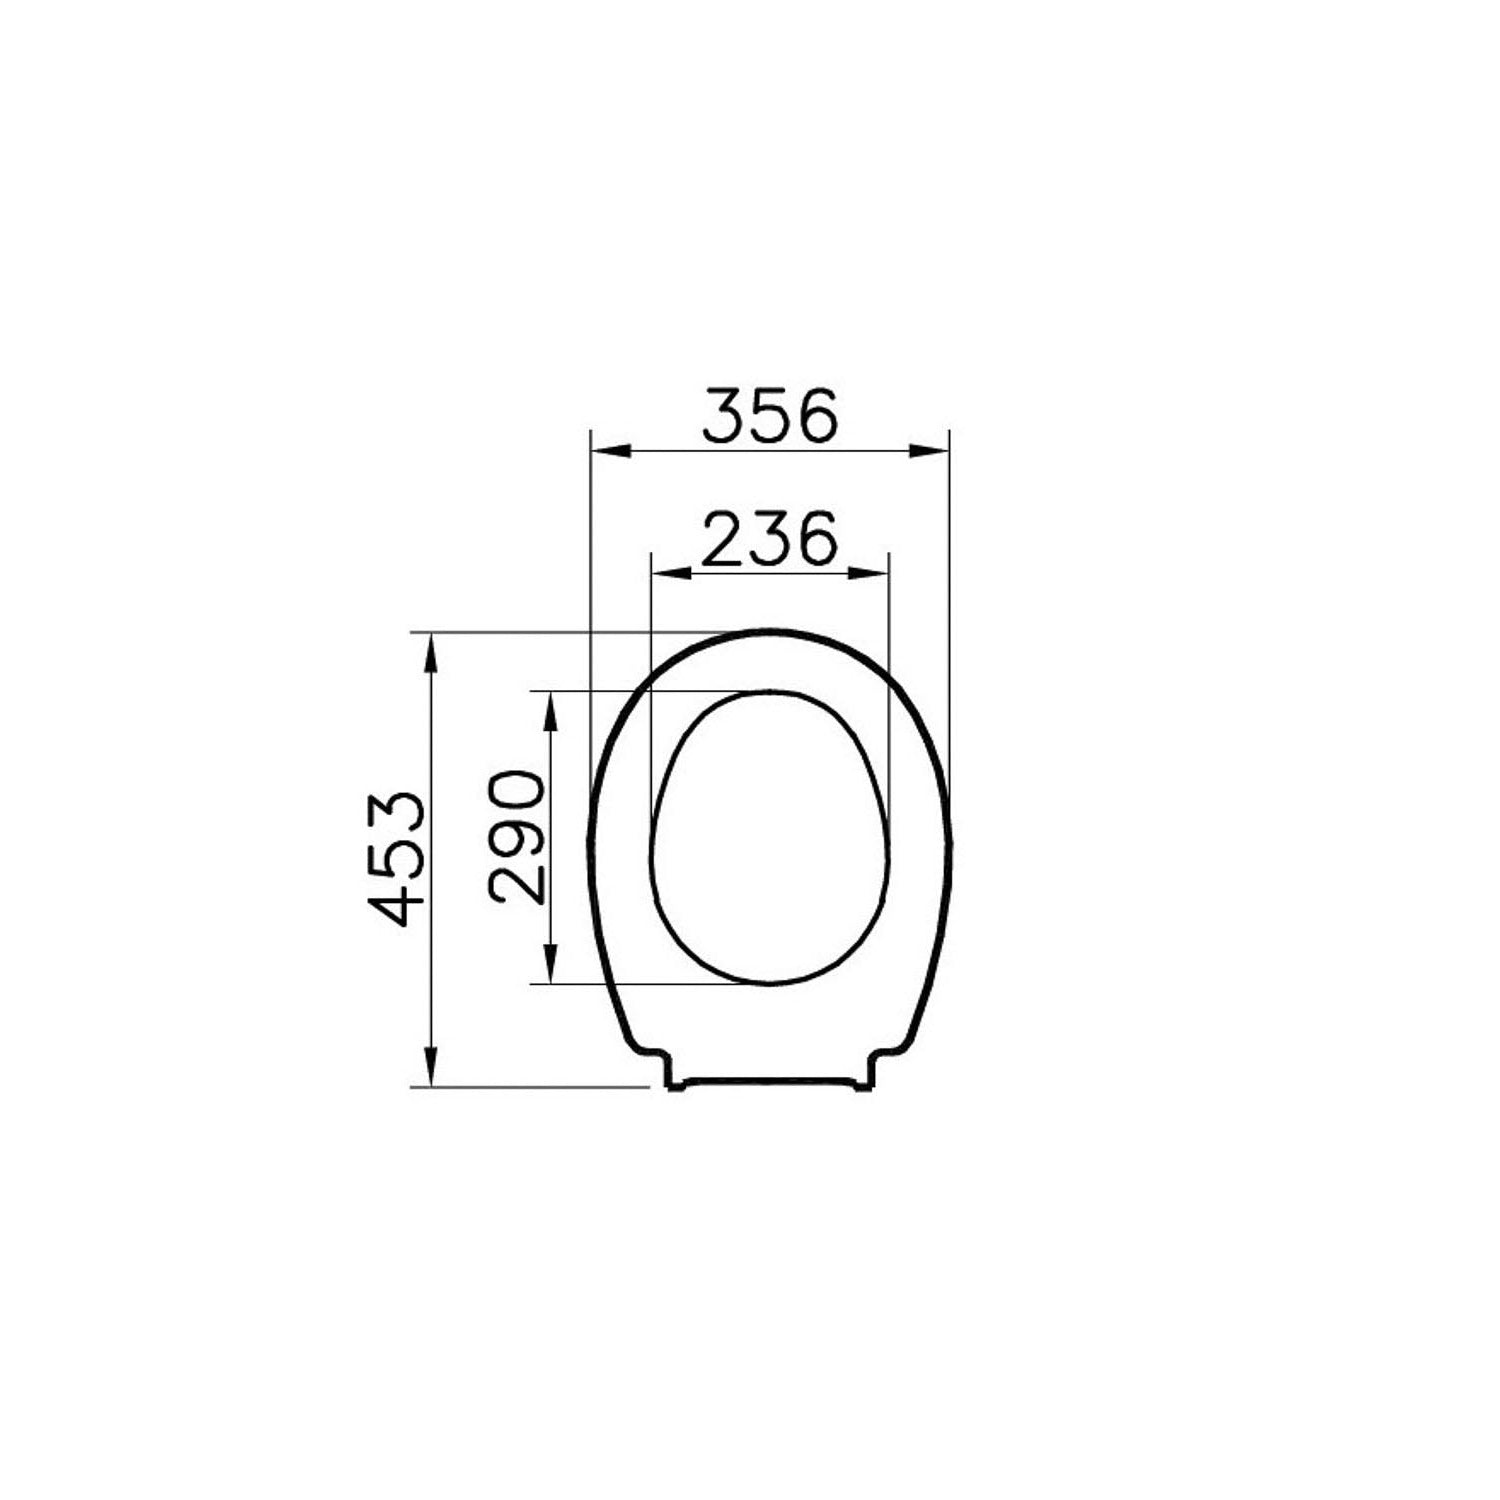 Consilio Toilet Seat Ring dimensional drawing